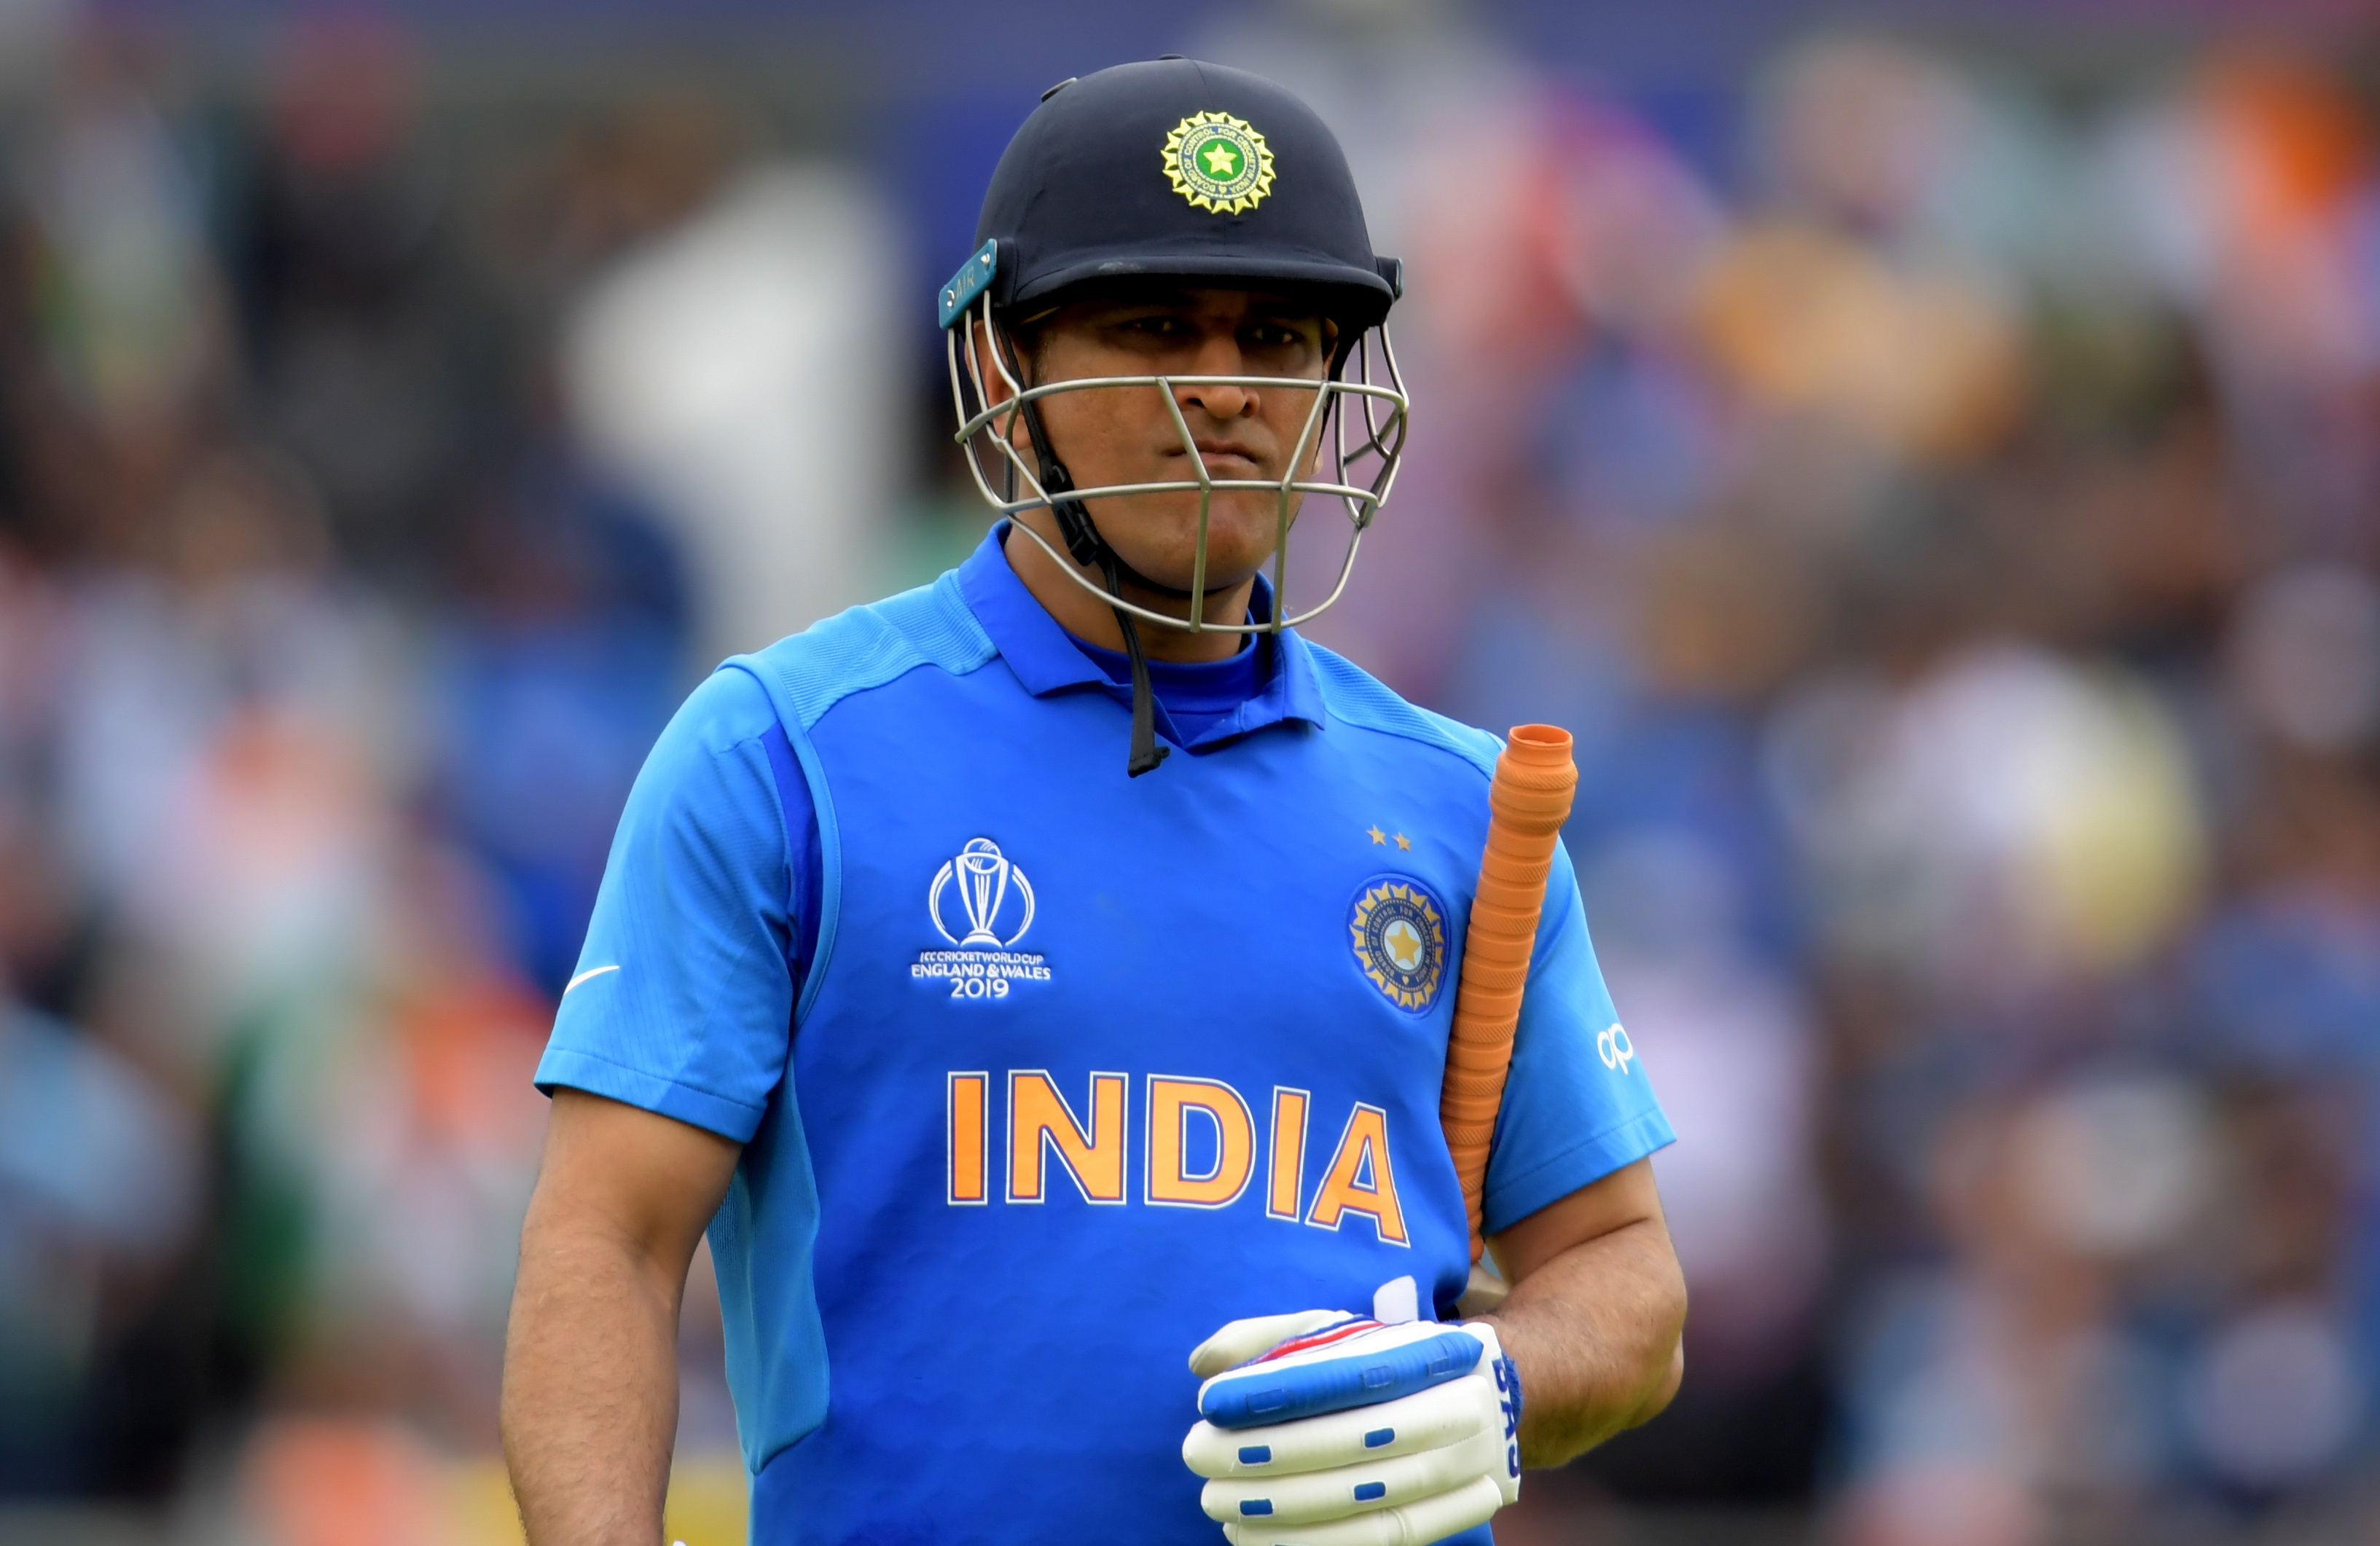 Dhoni's T20 World Cup inclusion rests on IPL performance, says Shastri